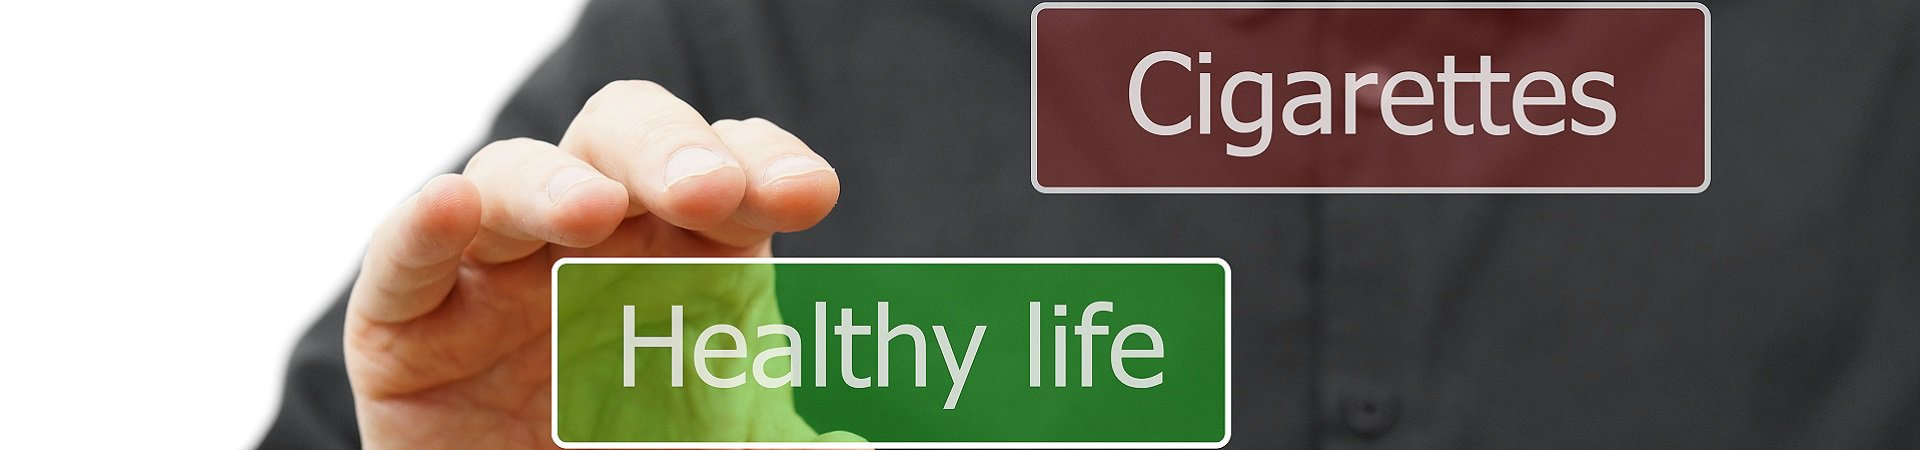 Choosing healthy life graphic